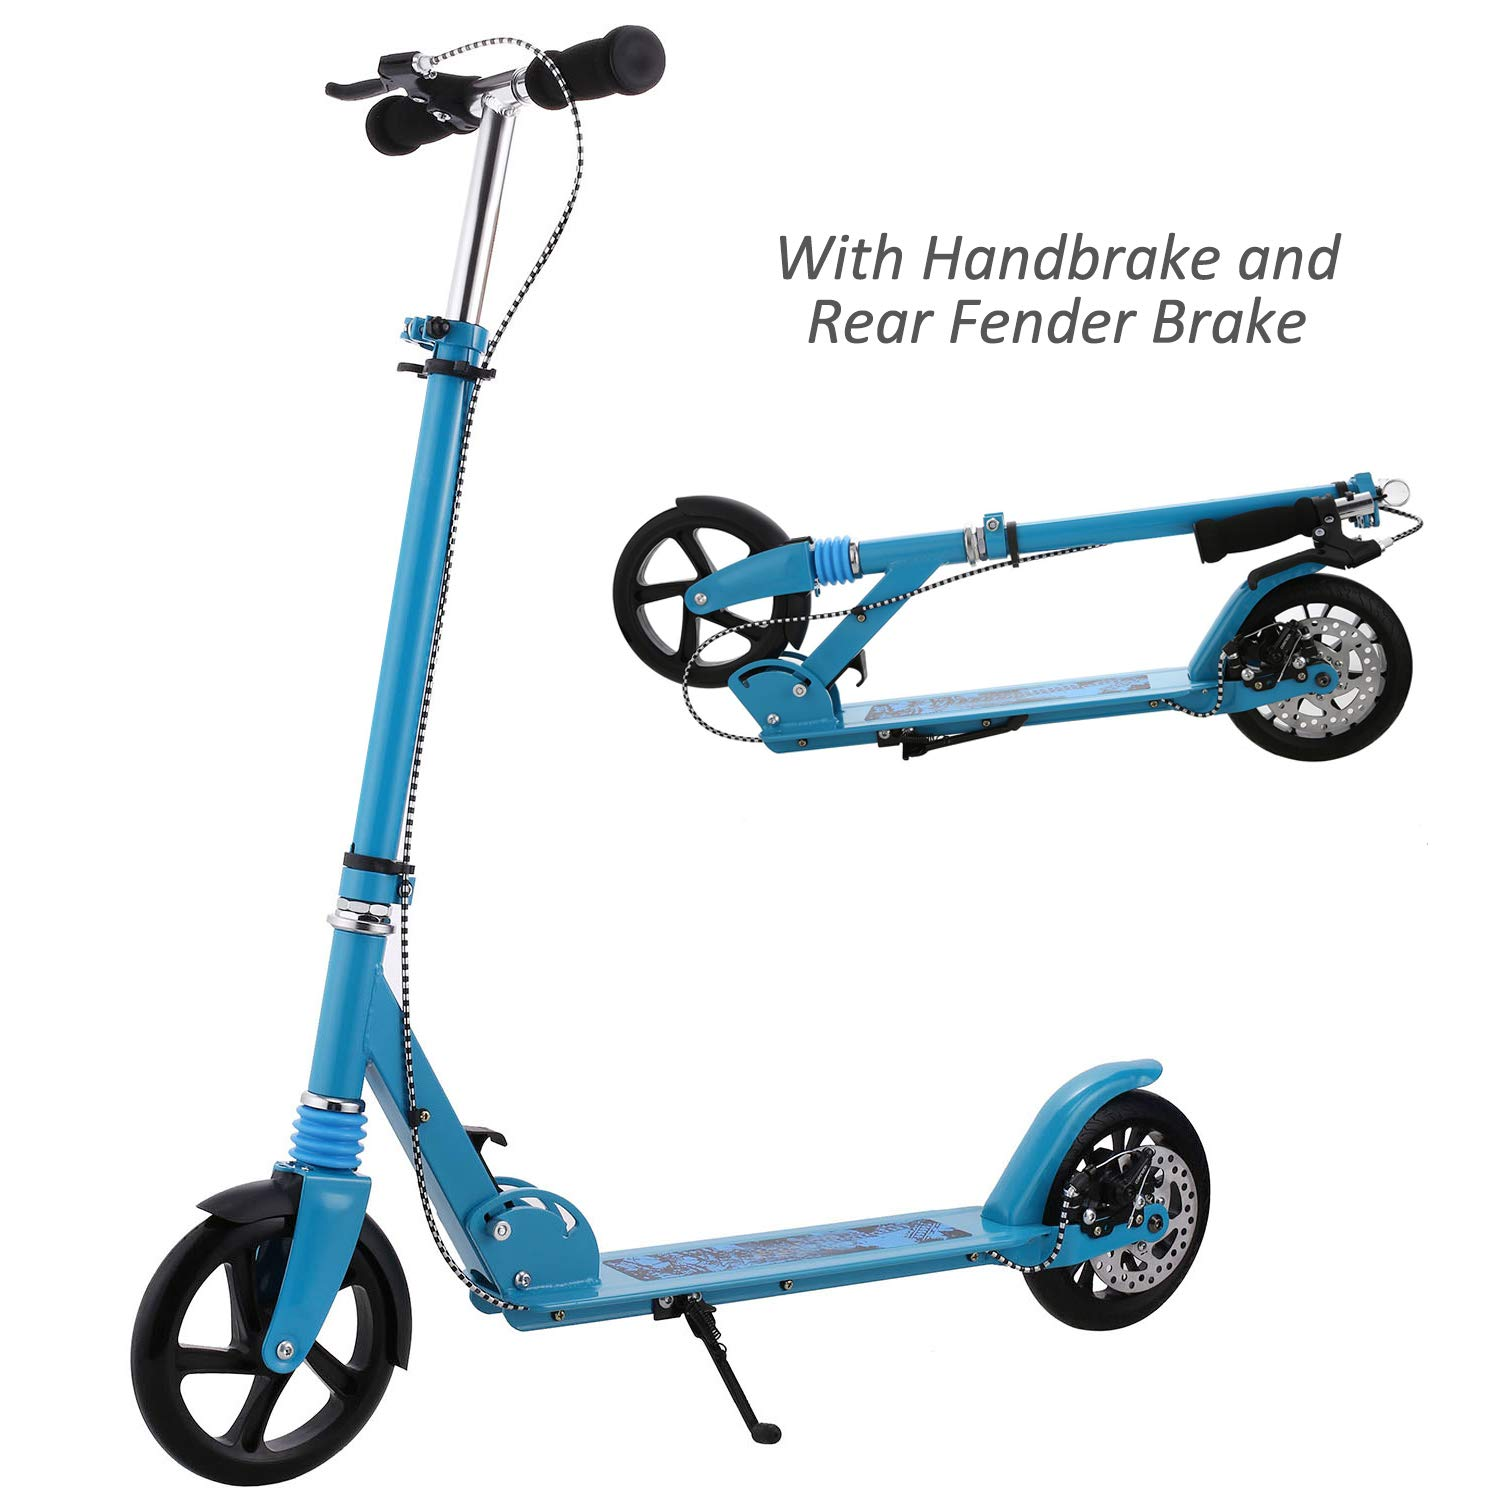 Hikole Adult Scooter Upgrade | Adjustable Height, Foldable, Hand Disc Break + Rear Fender Brake, Lightweight Aluminium Alloy Commuter Big Wheels Scooter for Adults Teens